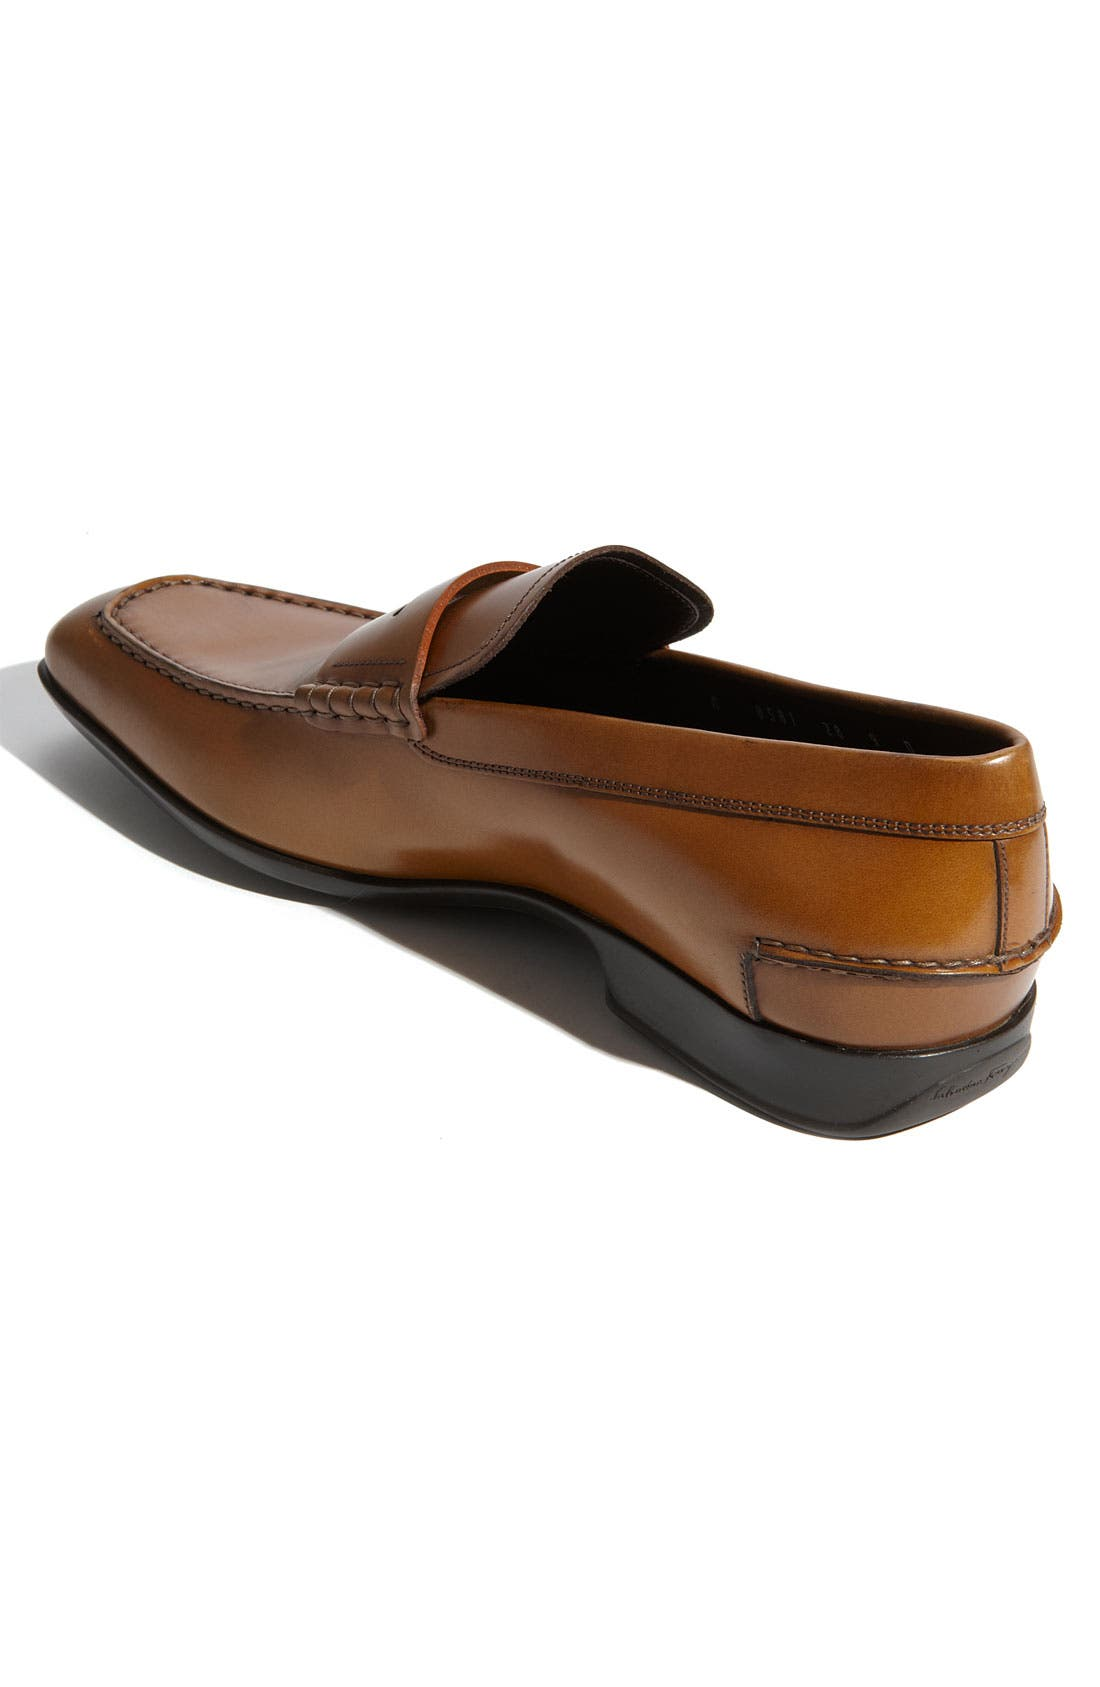 Alternate Image 2  - Salvatore Ferragamo 'Canto' Penny Loafer